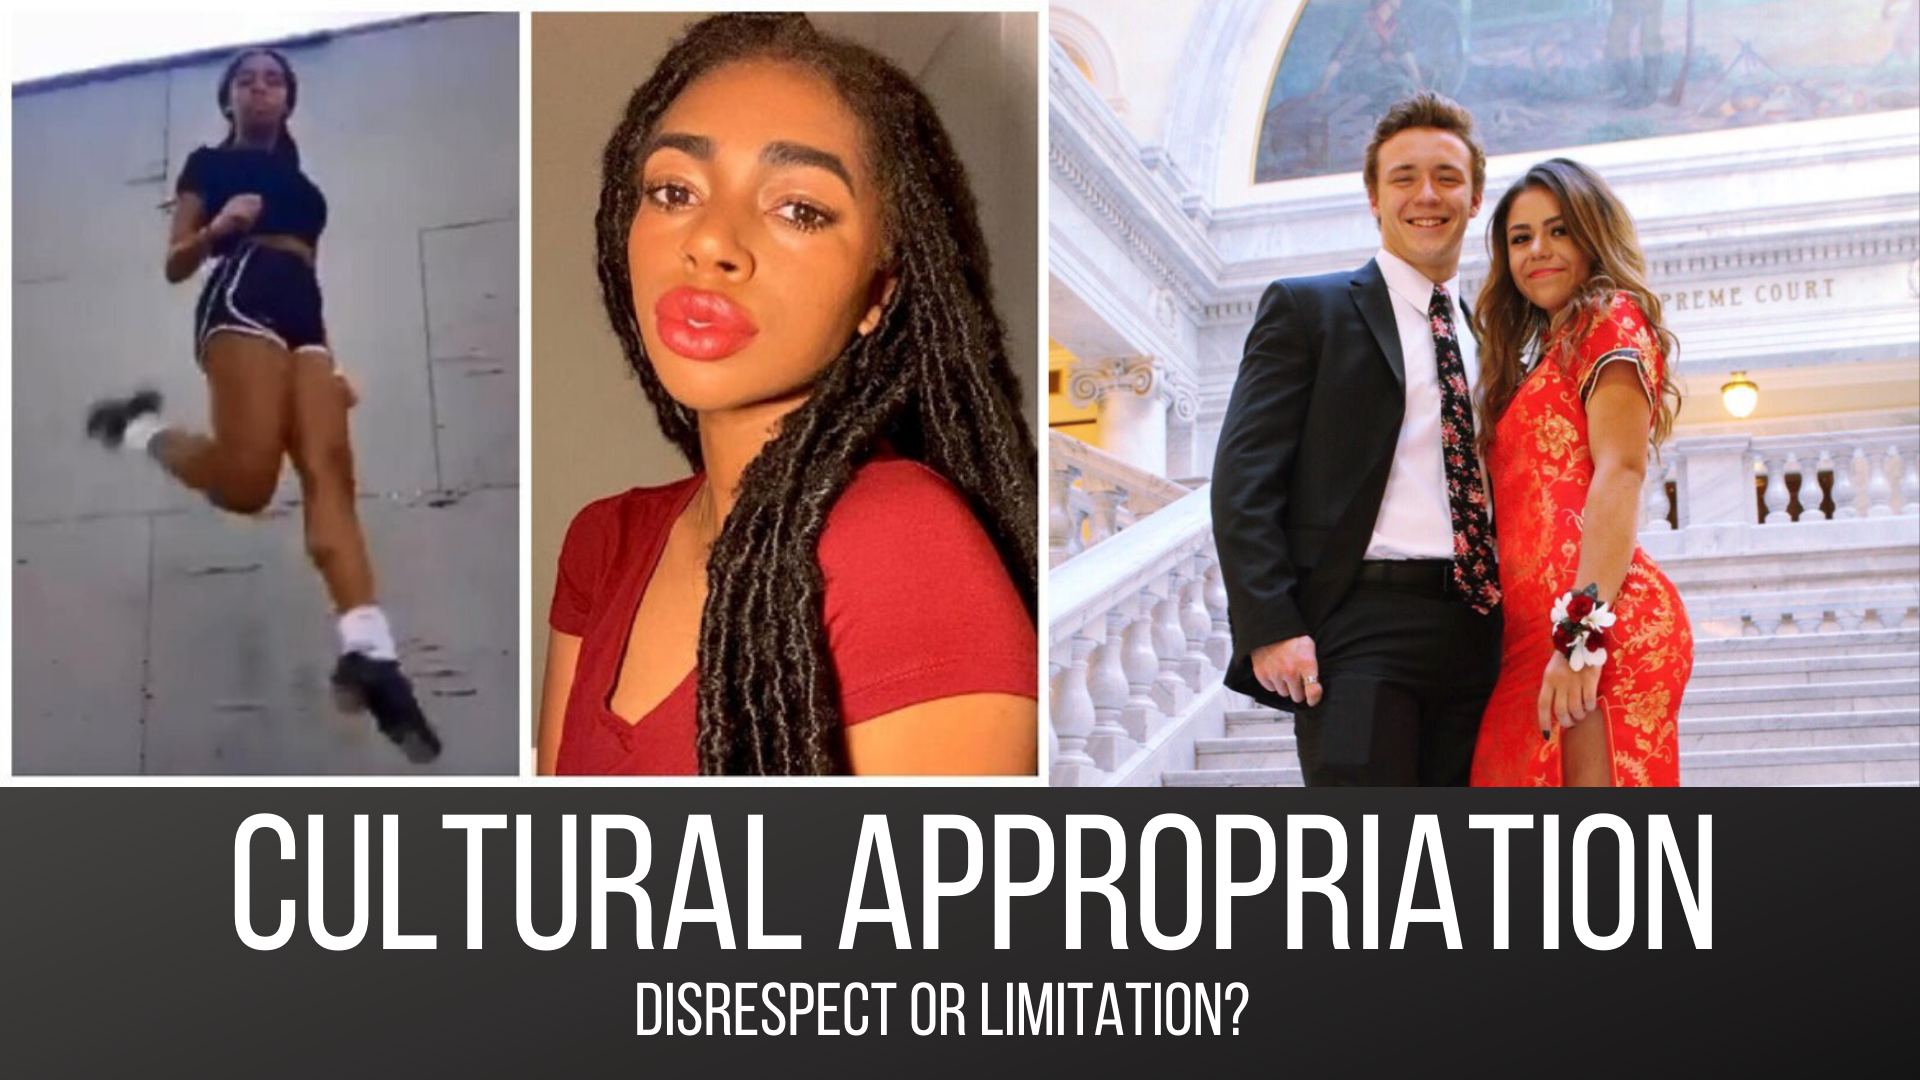 Cultural Appropriation: Disrespect or Limitation?